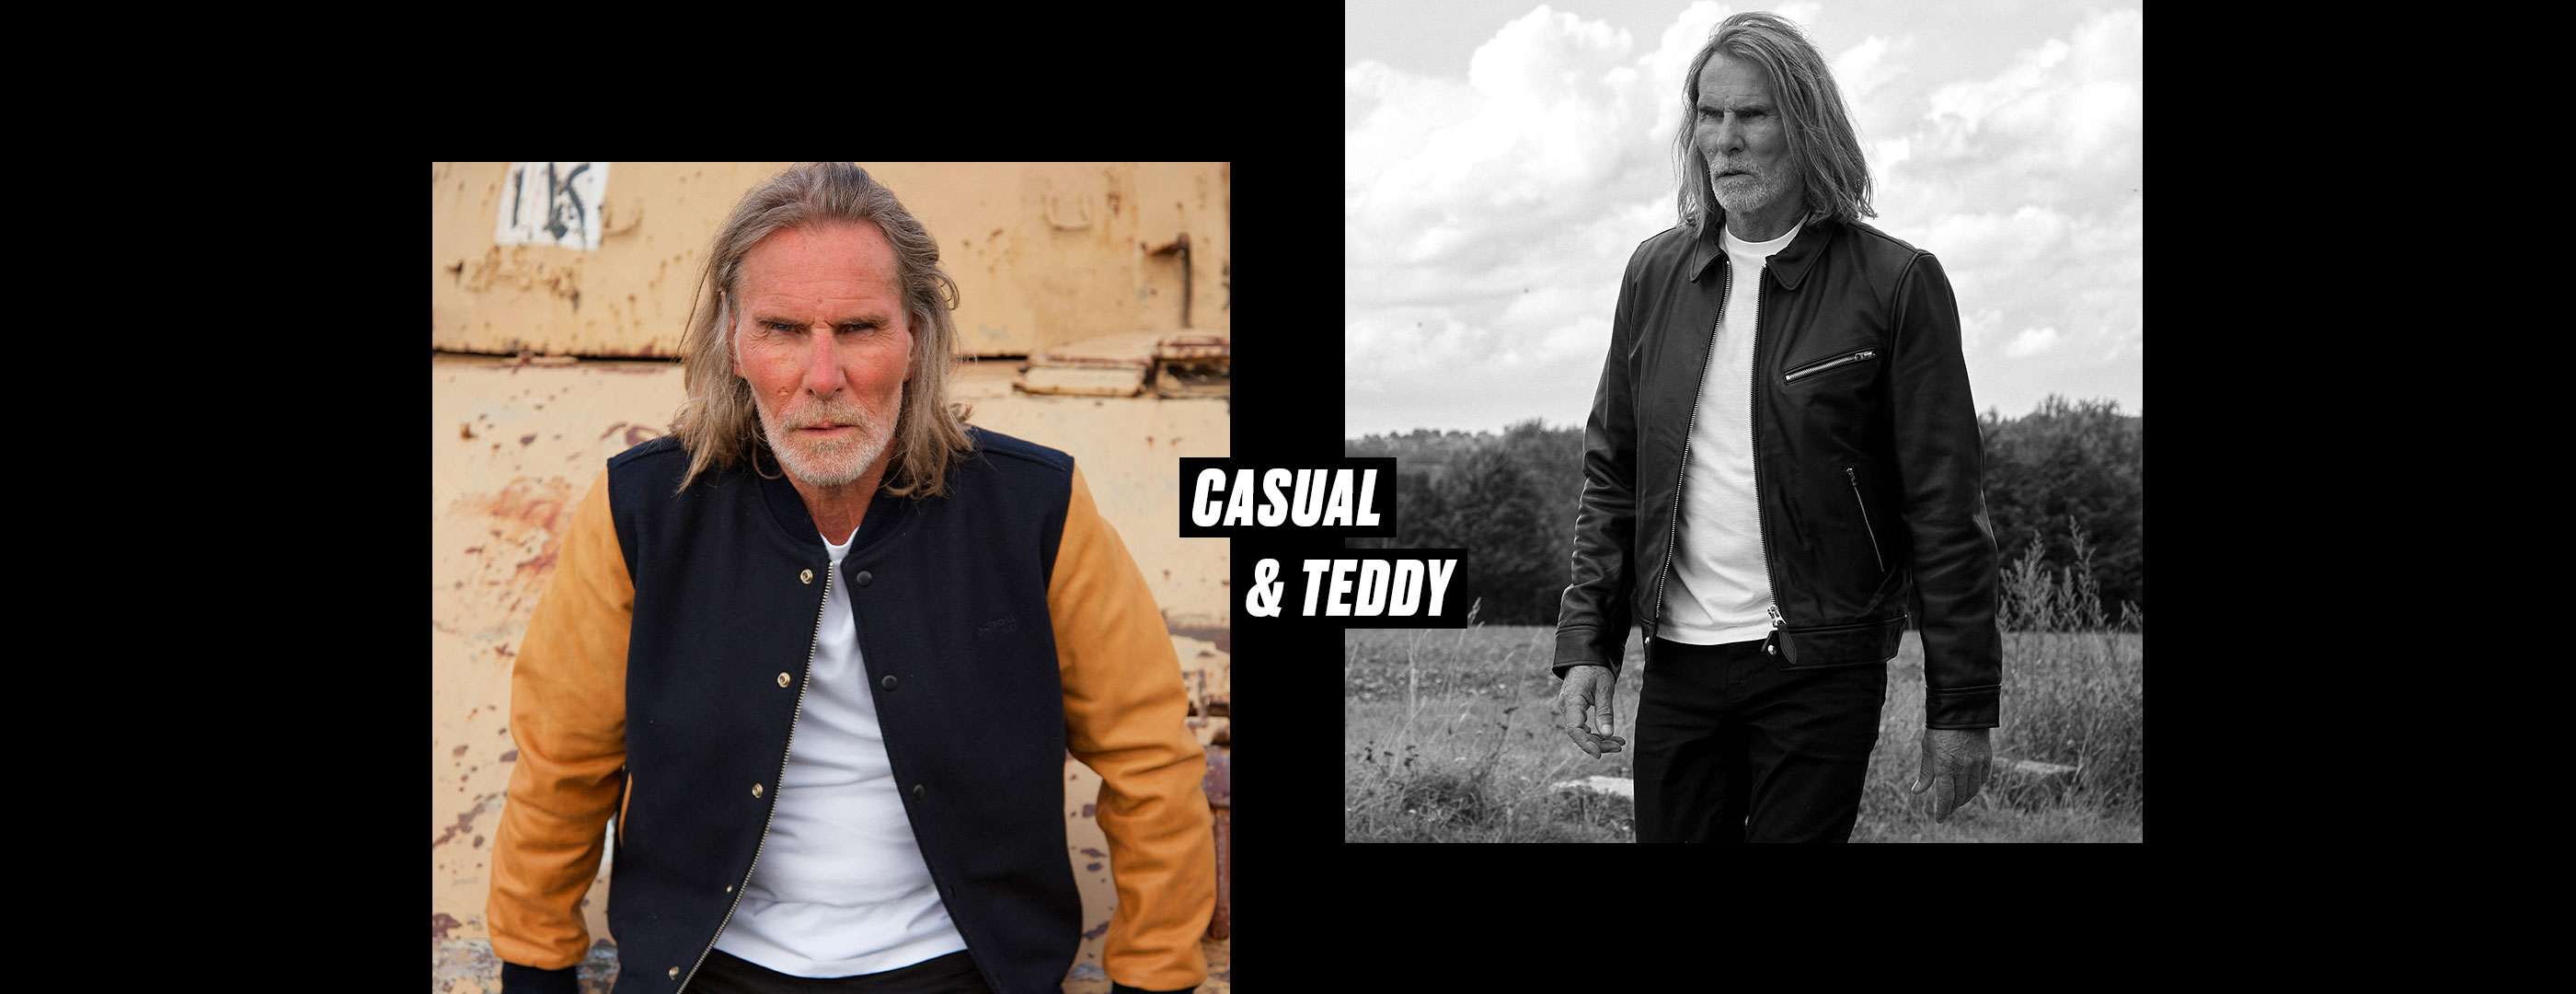 Casual & Teddy